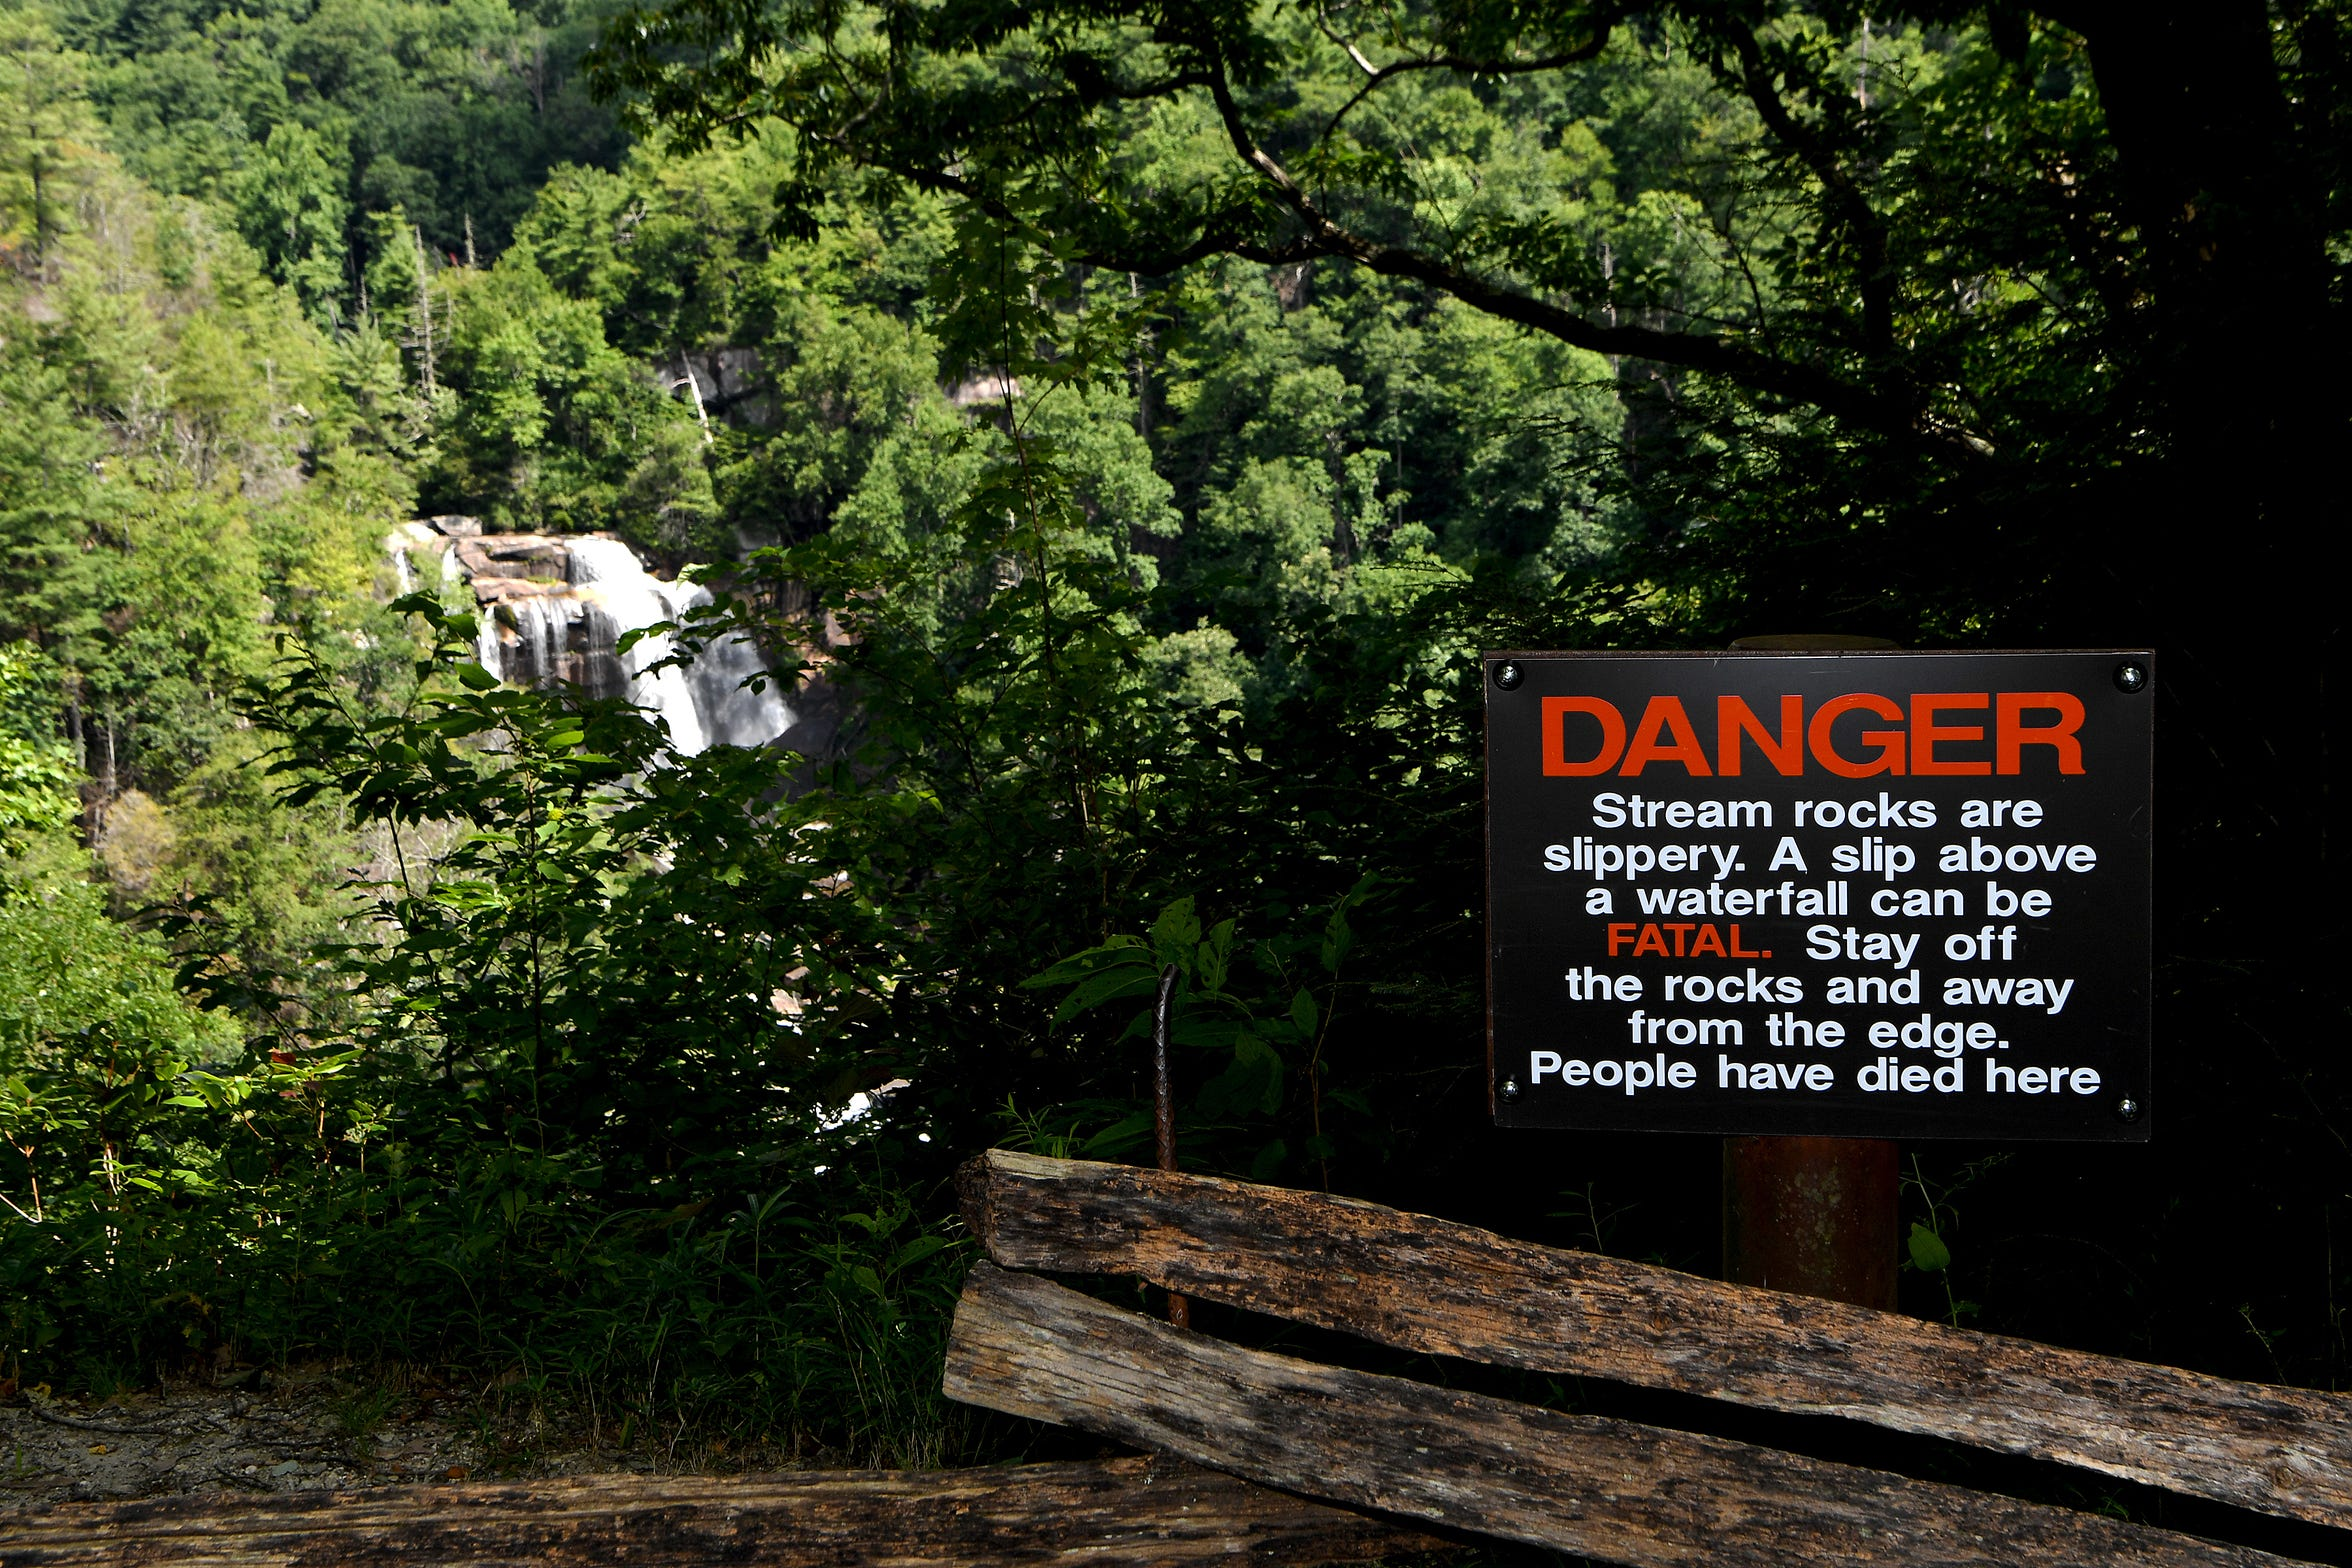 A sign at an observation point uses blunt language at White Water Falls in the Nantahala National Forest on Wednesday, July 25, 2018. The waterfall is the highest in the East at more than 400 feet. It is also one of the most deadly. A least 13 people have died at the falls since 1995.